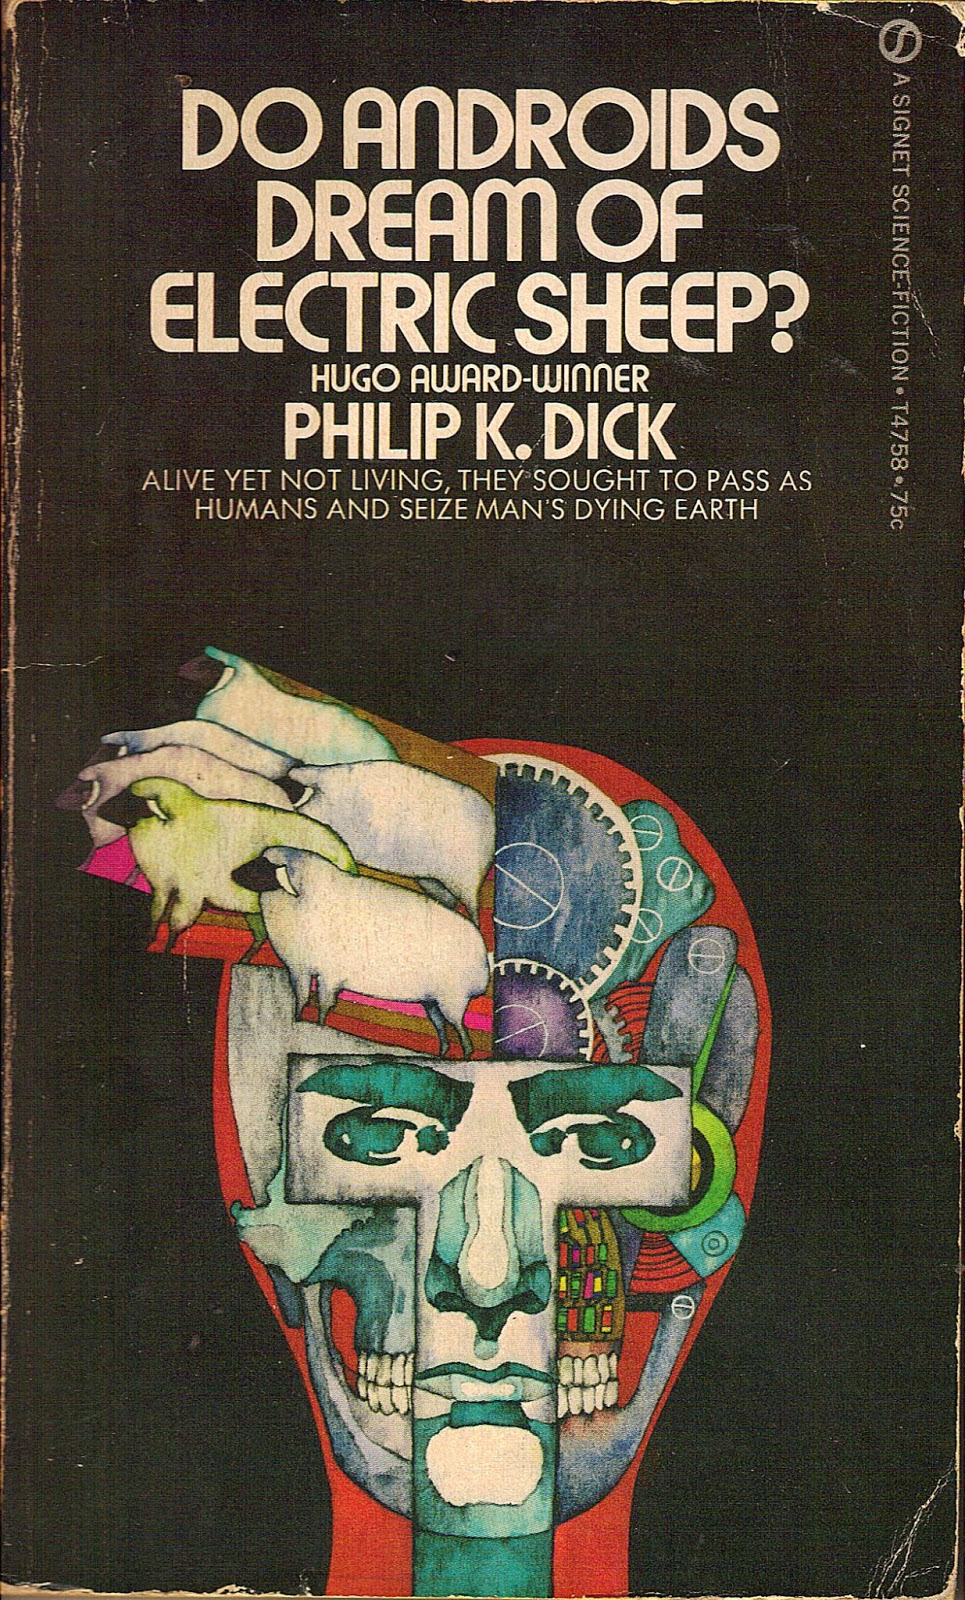 a review of the science fiction novel sheep by philip k dick